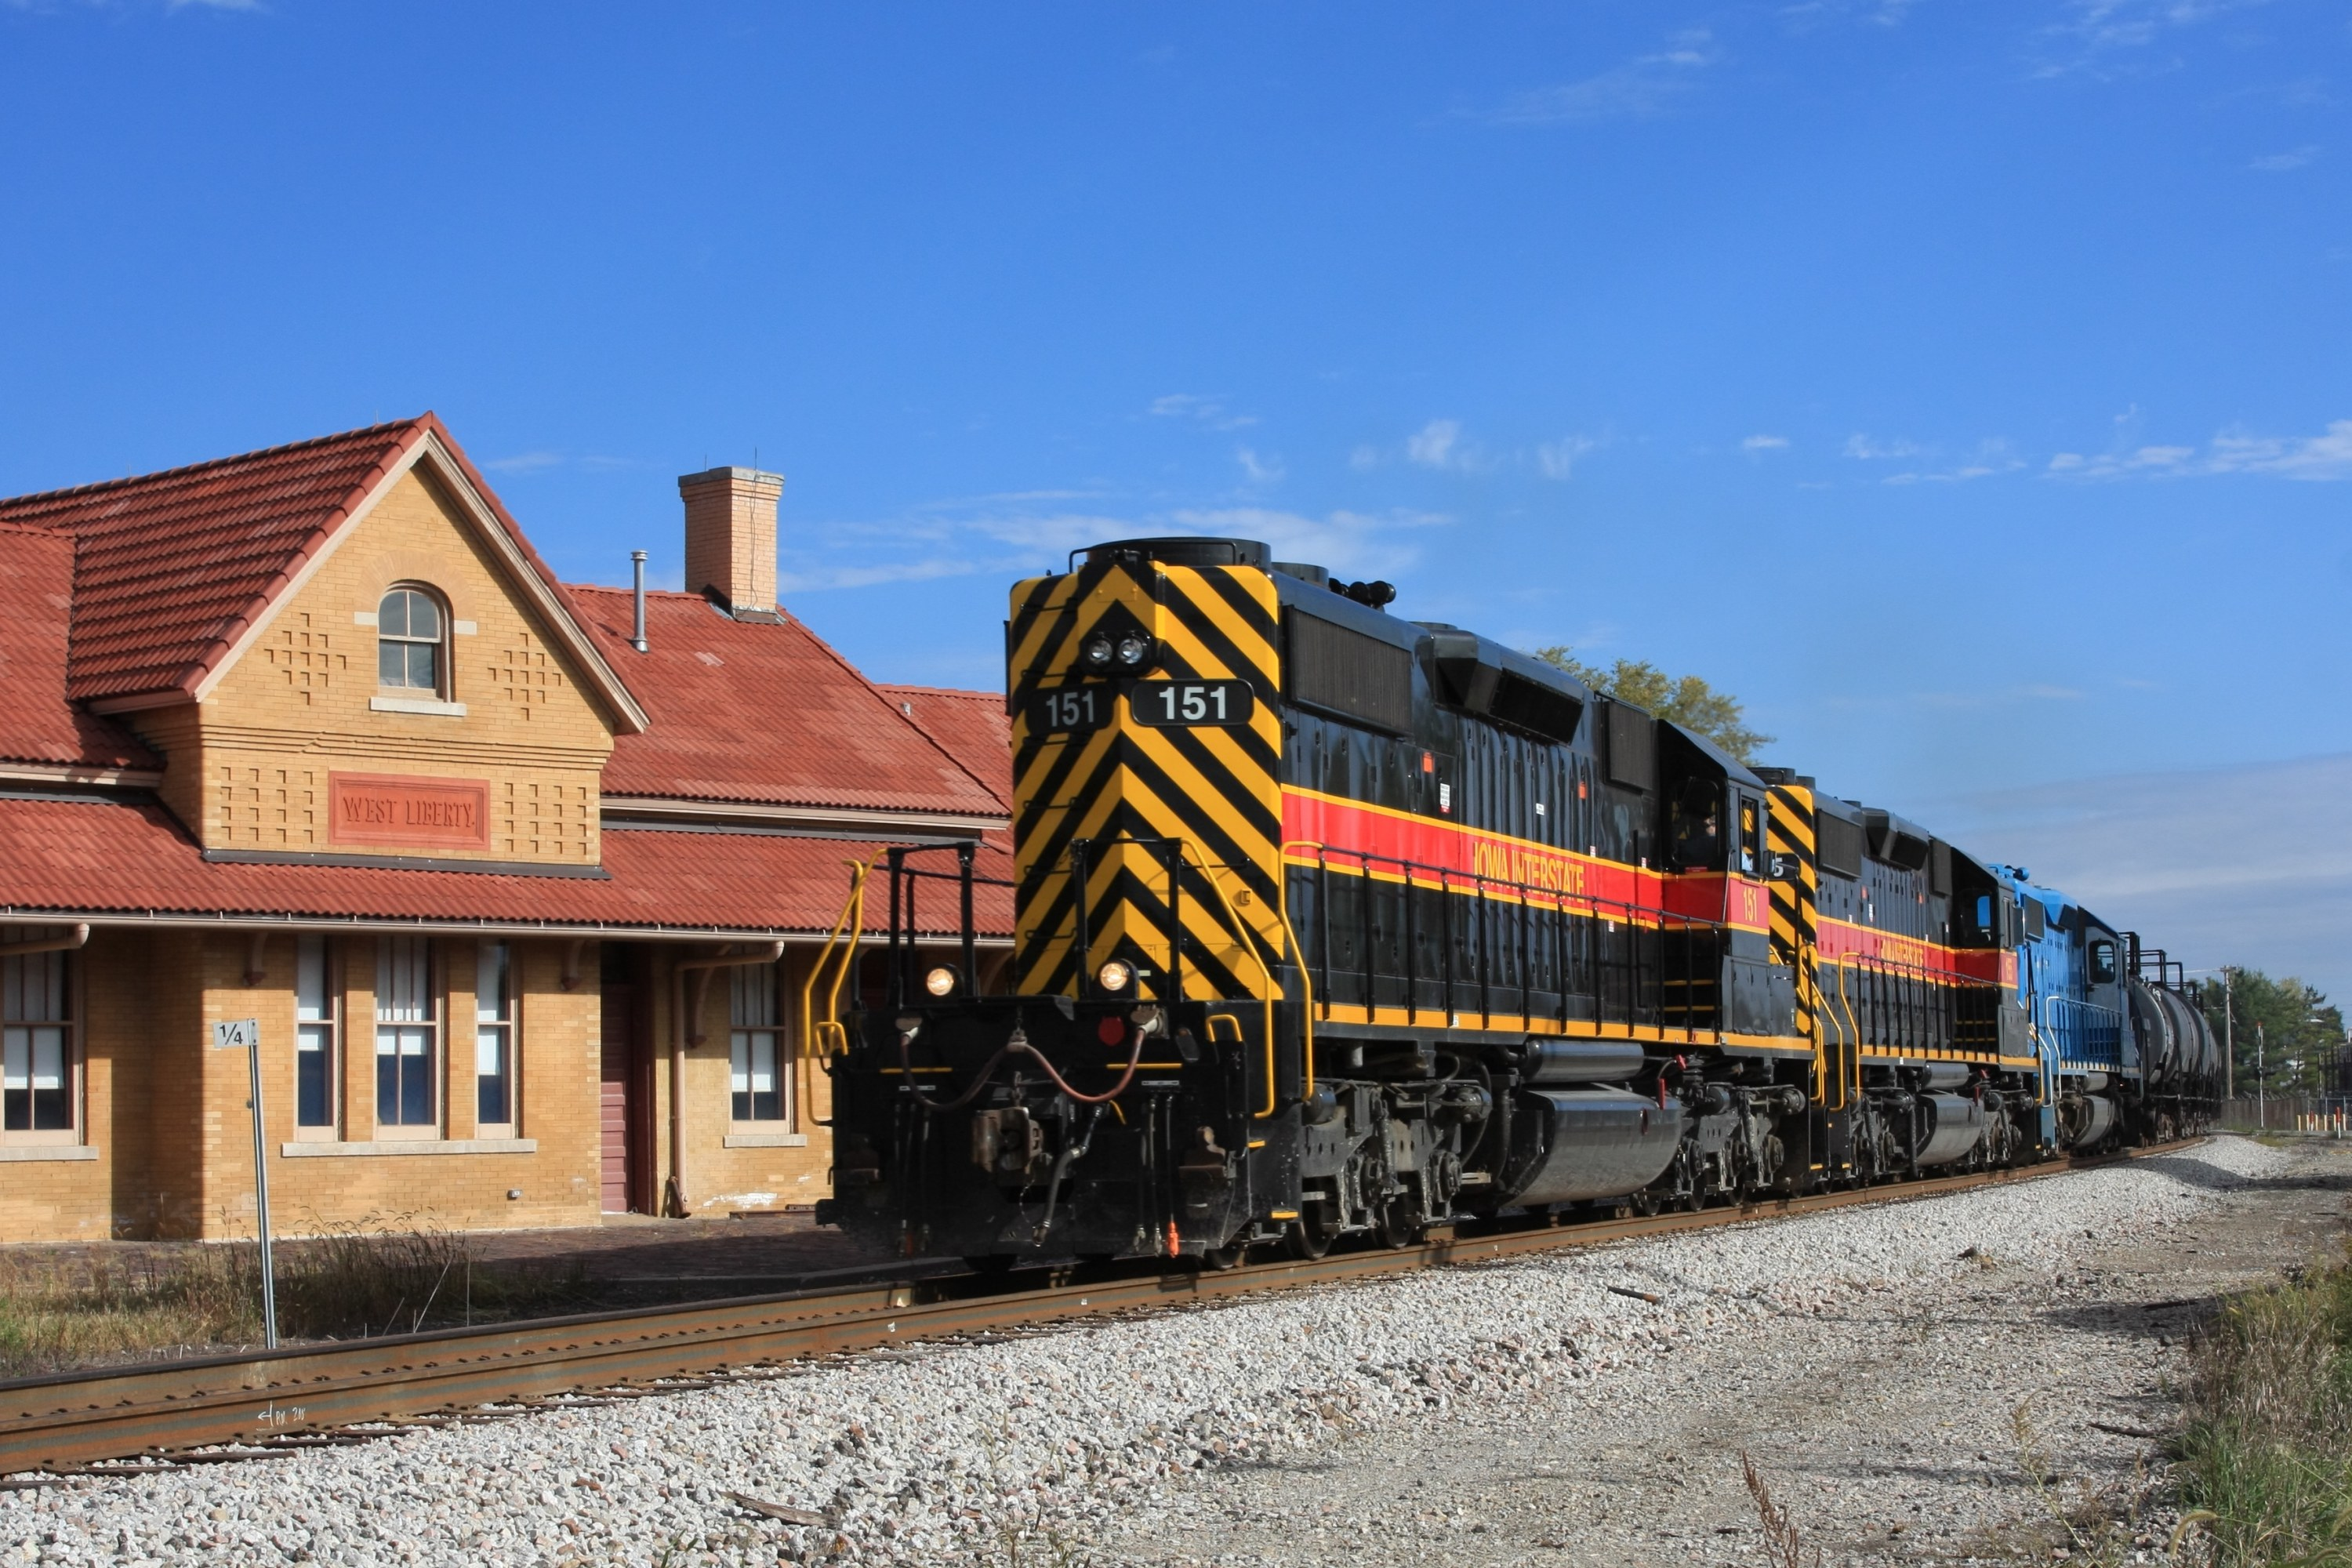 IAIS 151 passing the West Liberty depot